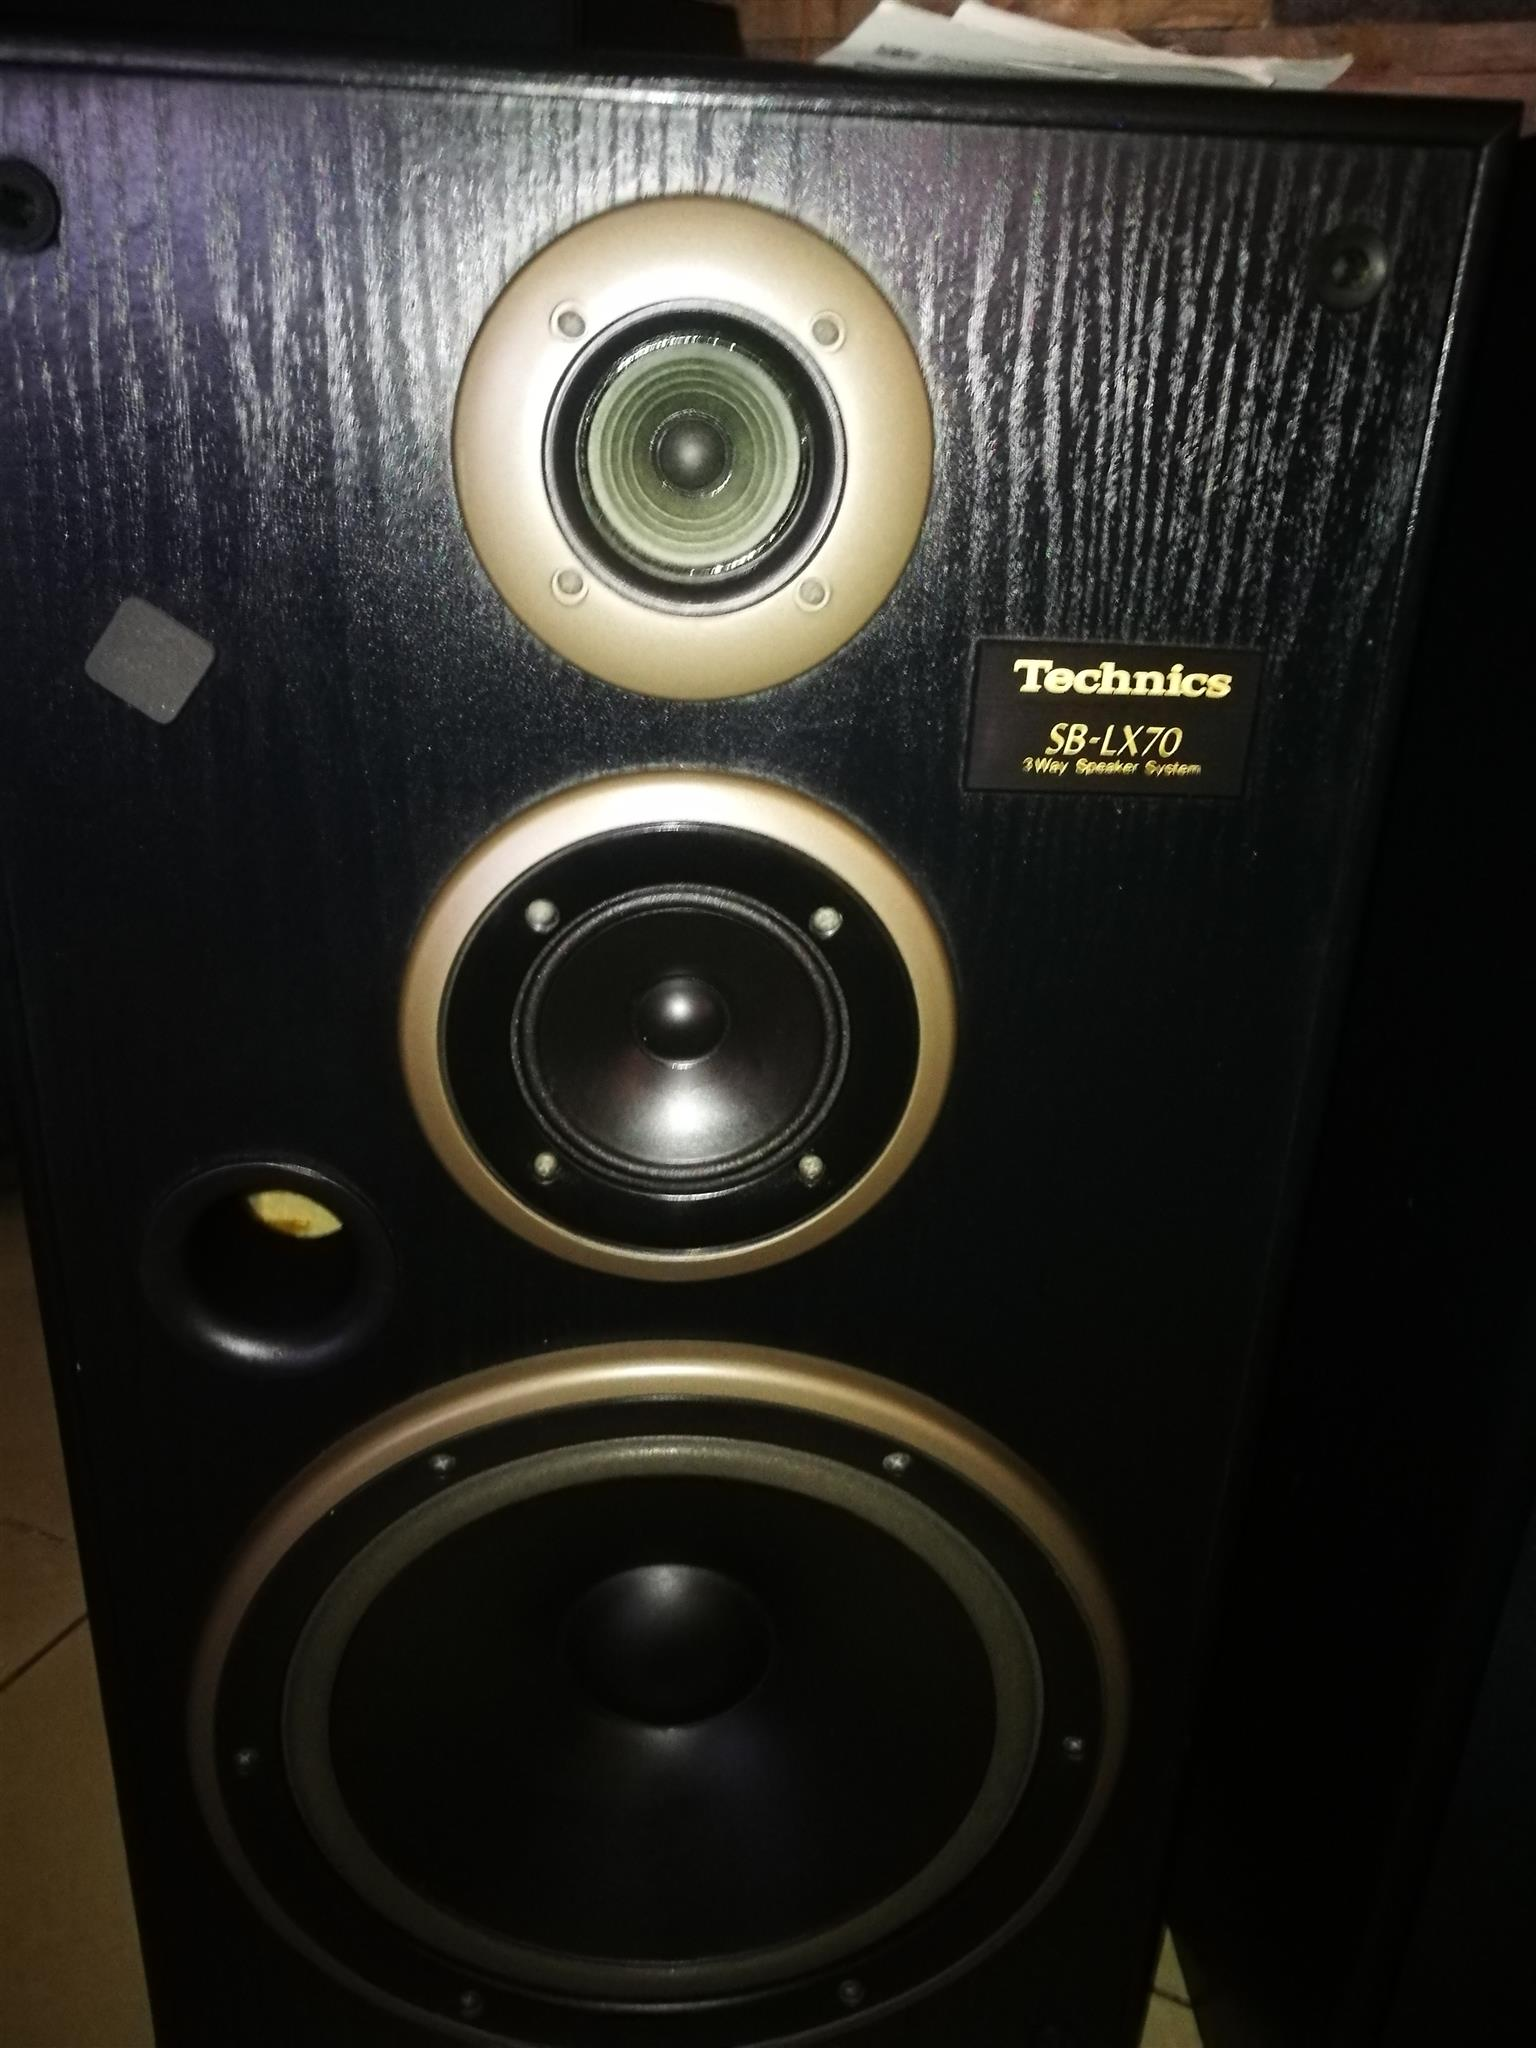 In search of Vintage audios (Amps and speakers), including loose speakers